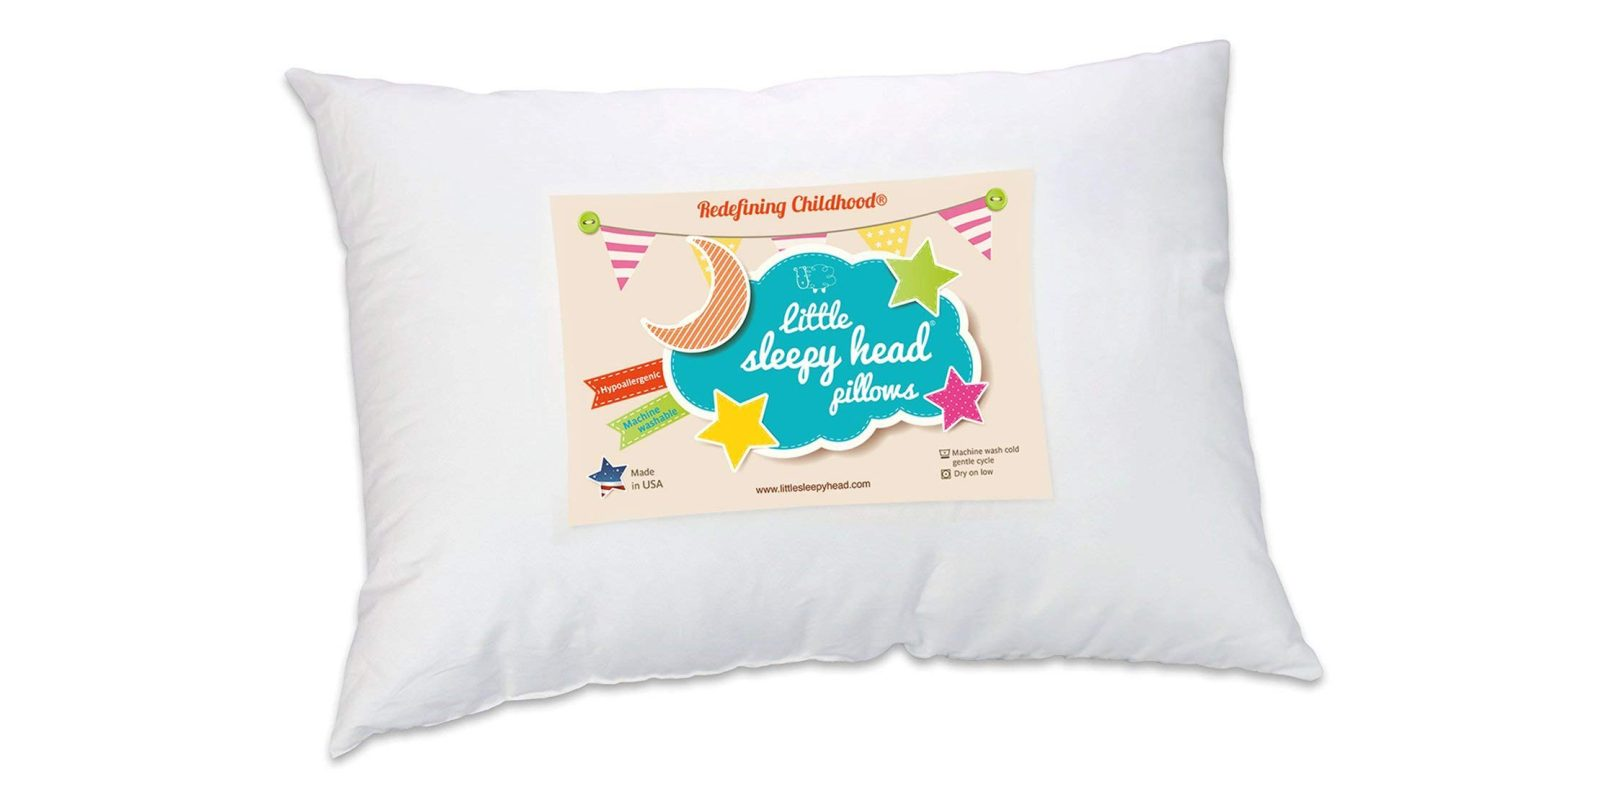 This Hypoallergenic Toddler Pillow Has Stellar Ratings At